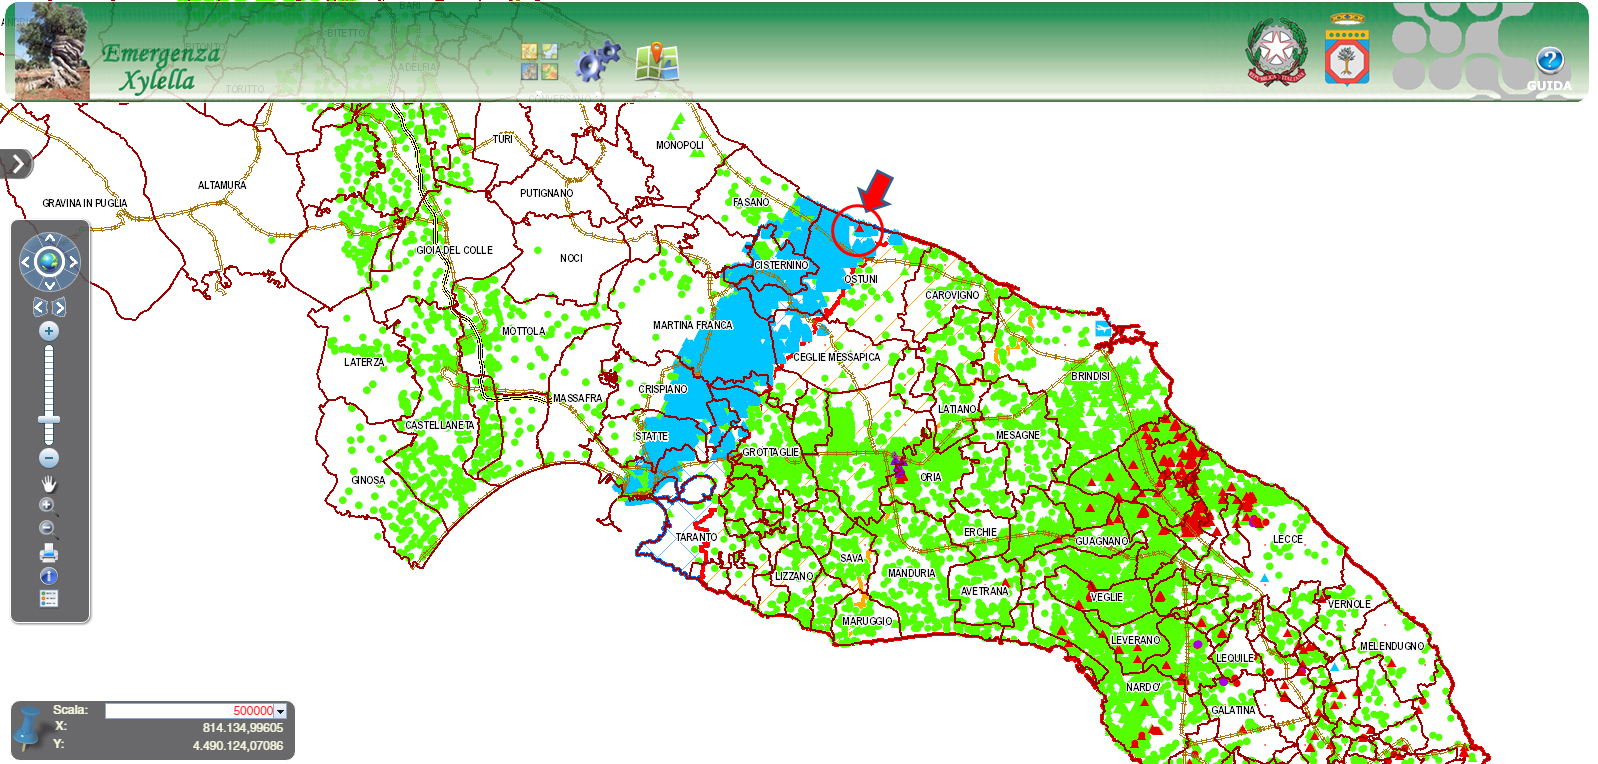 Location of the new outbreak of Xylella fastidiosa in Apulia (red arrow).